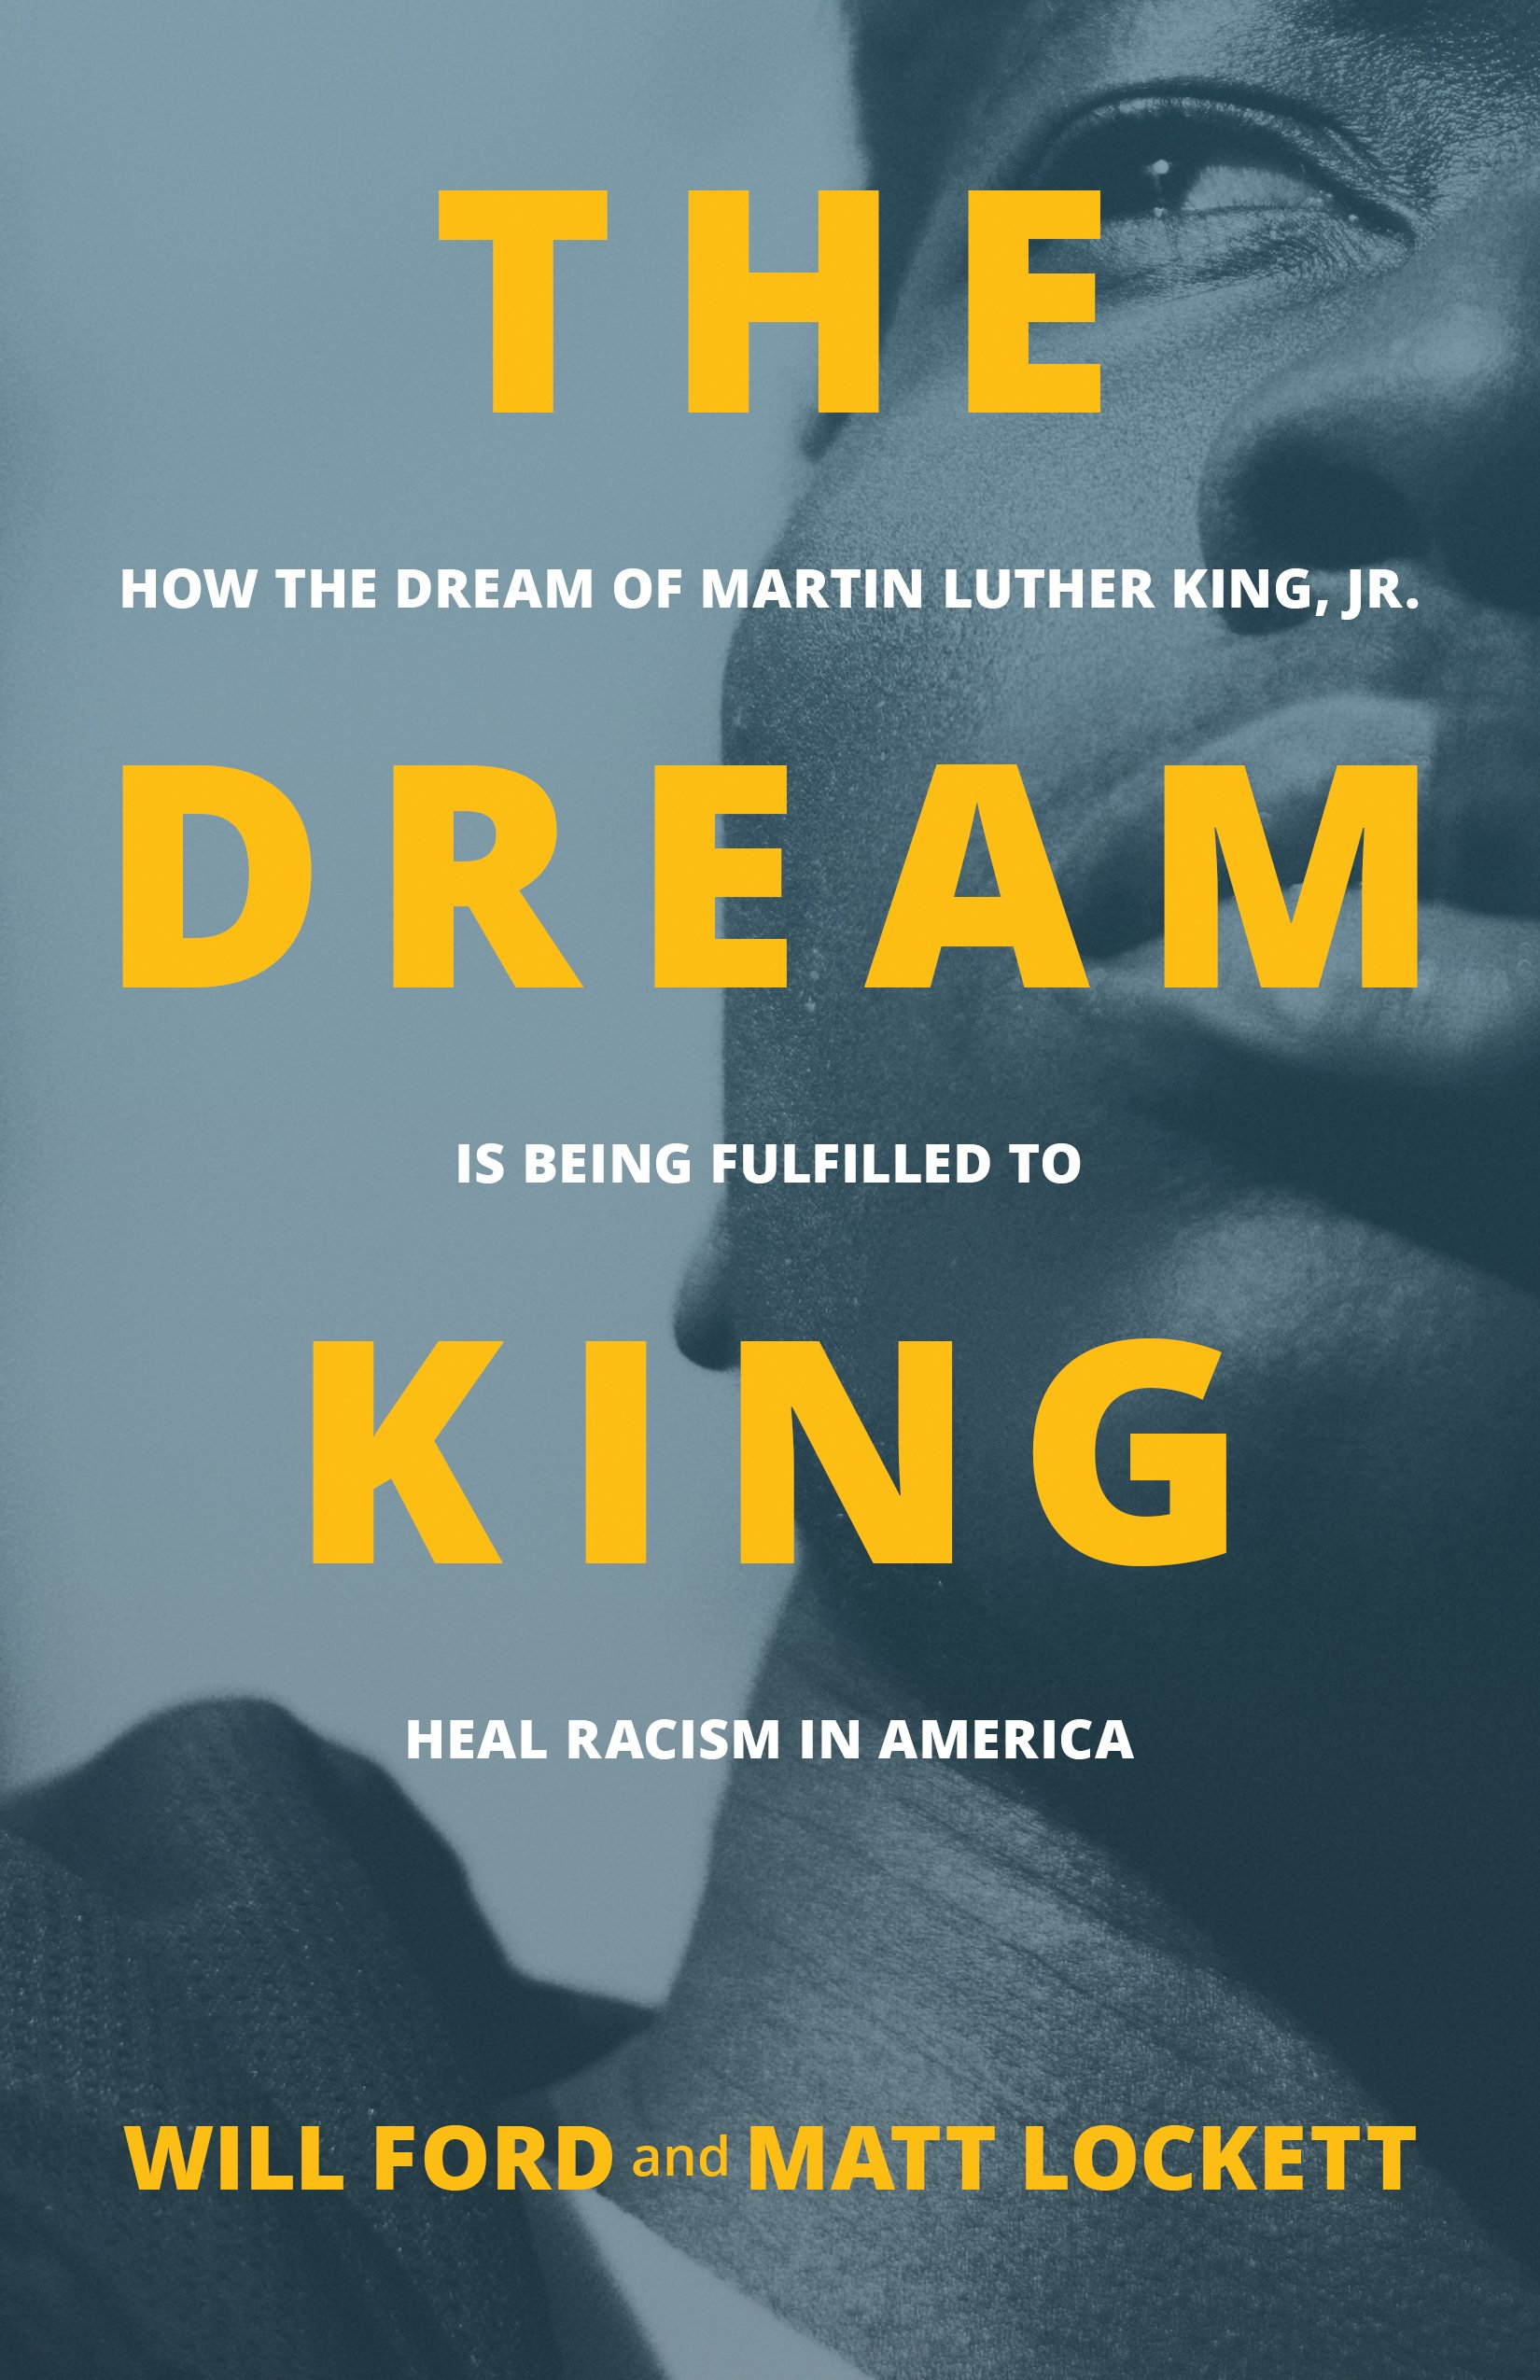 Image OfThe Dream King: How The Dream Of Martin Luther King, Jr. Is Being Fulfilled To Heal Racism In America